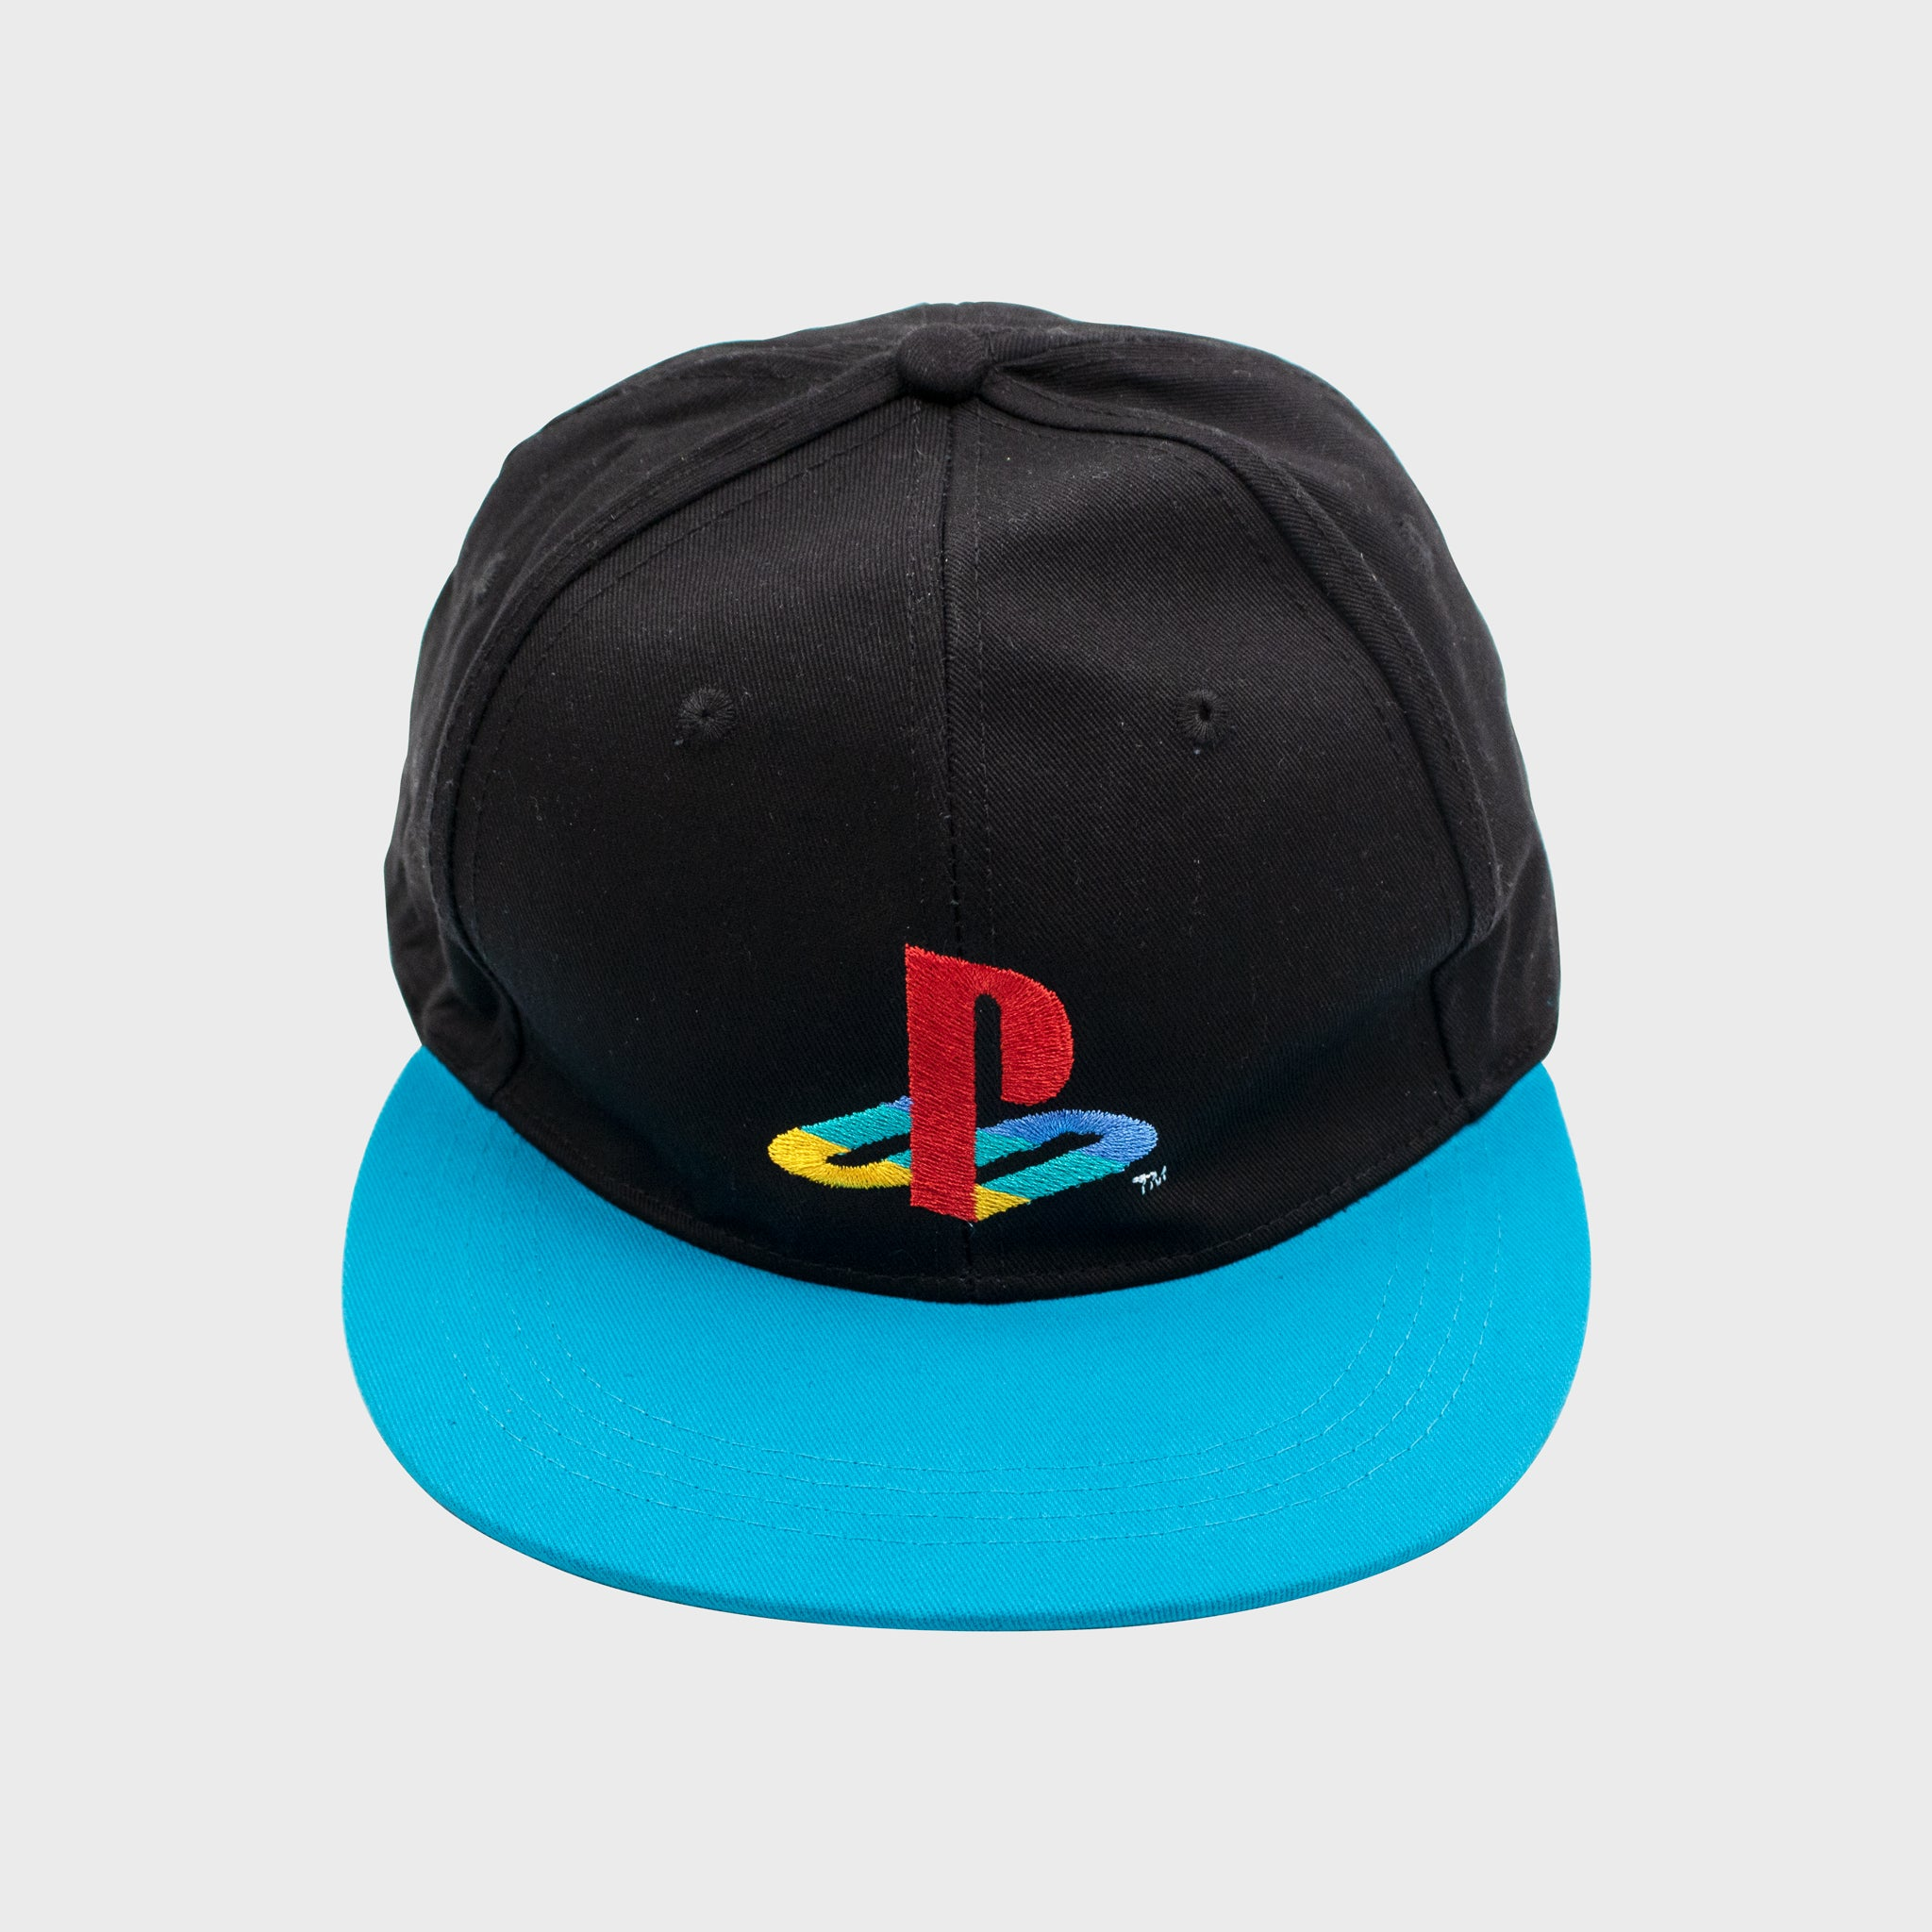 playstation ps4 ps video games console classic old school retro 90s gamestop retail box accessories collectibles exclusive culturefly hat cap snapback headwear